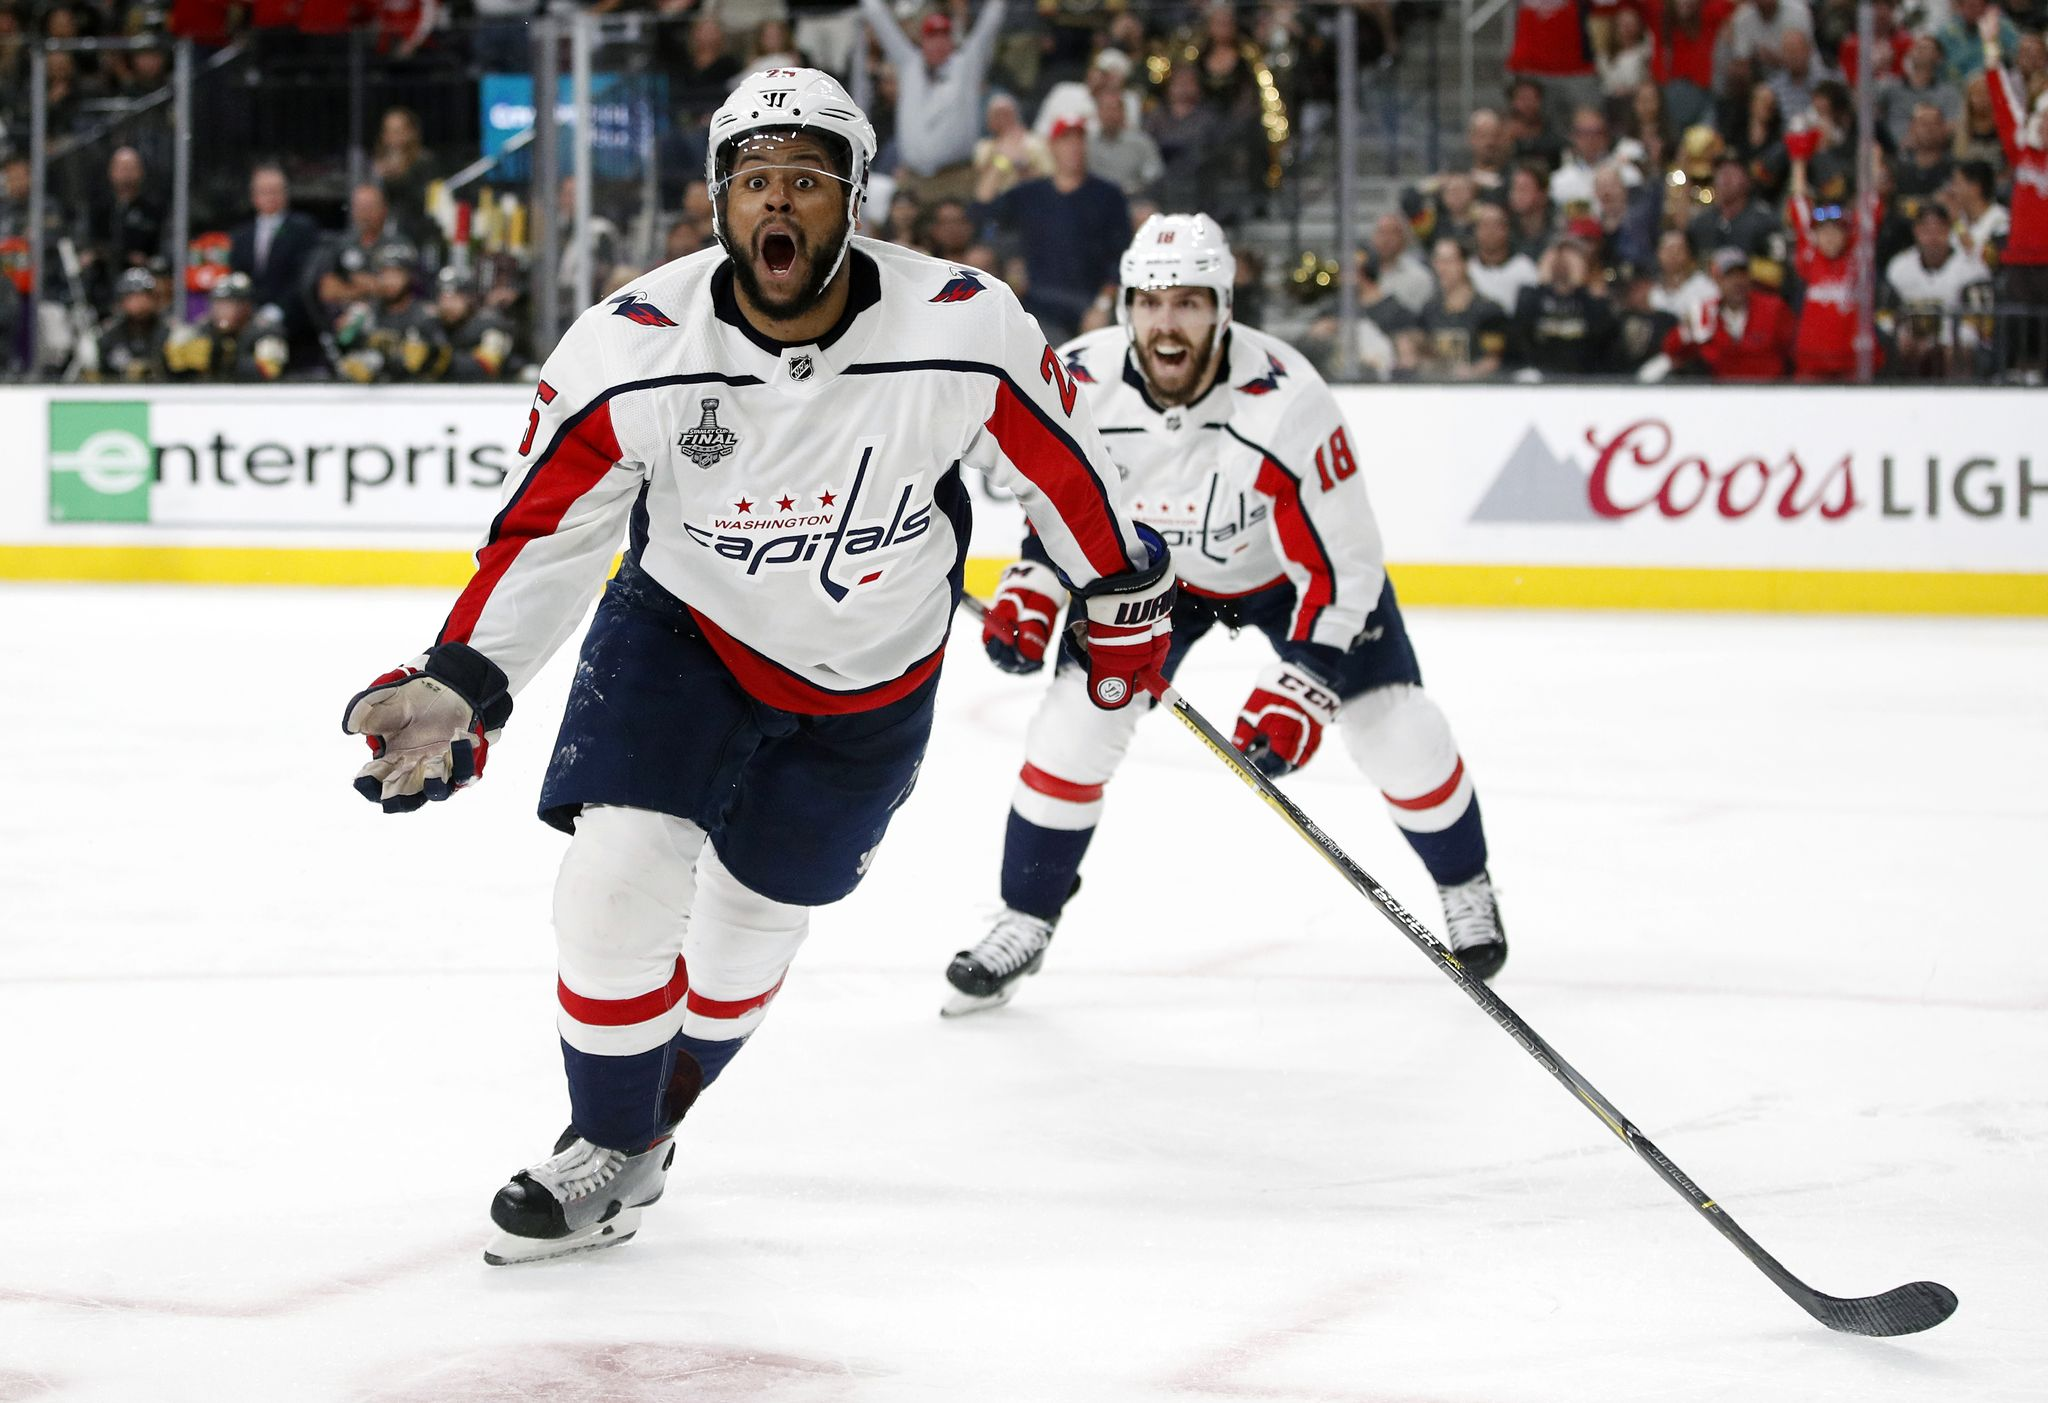 Devante Smith-Pelly clears waivers, remains in Capitals organization